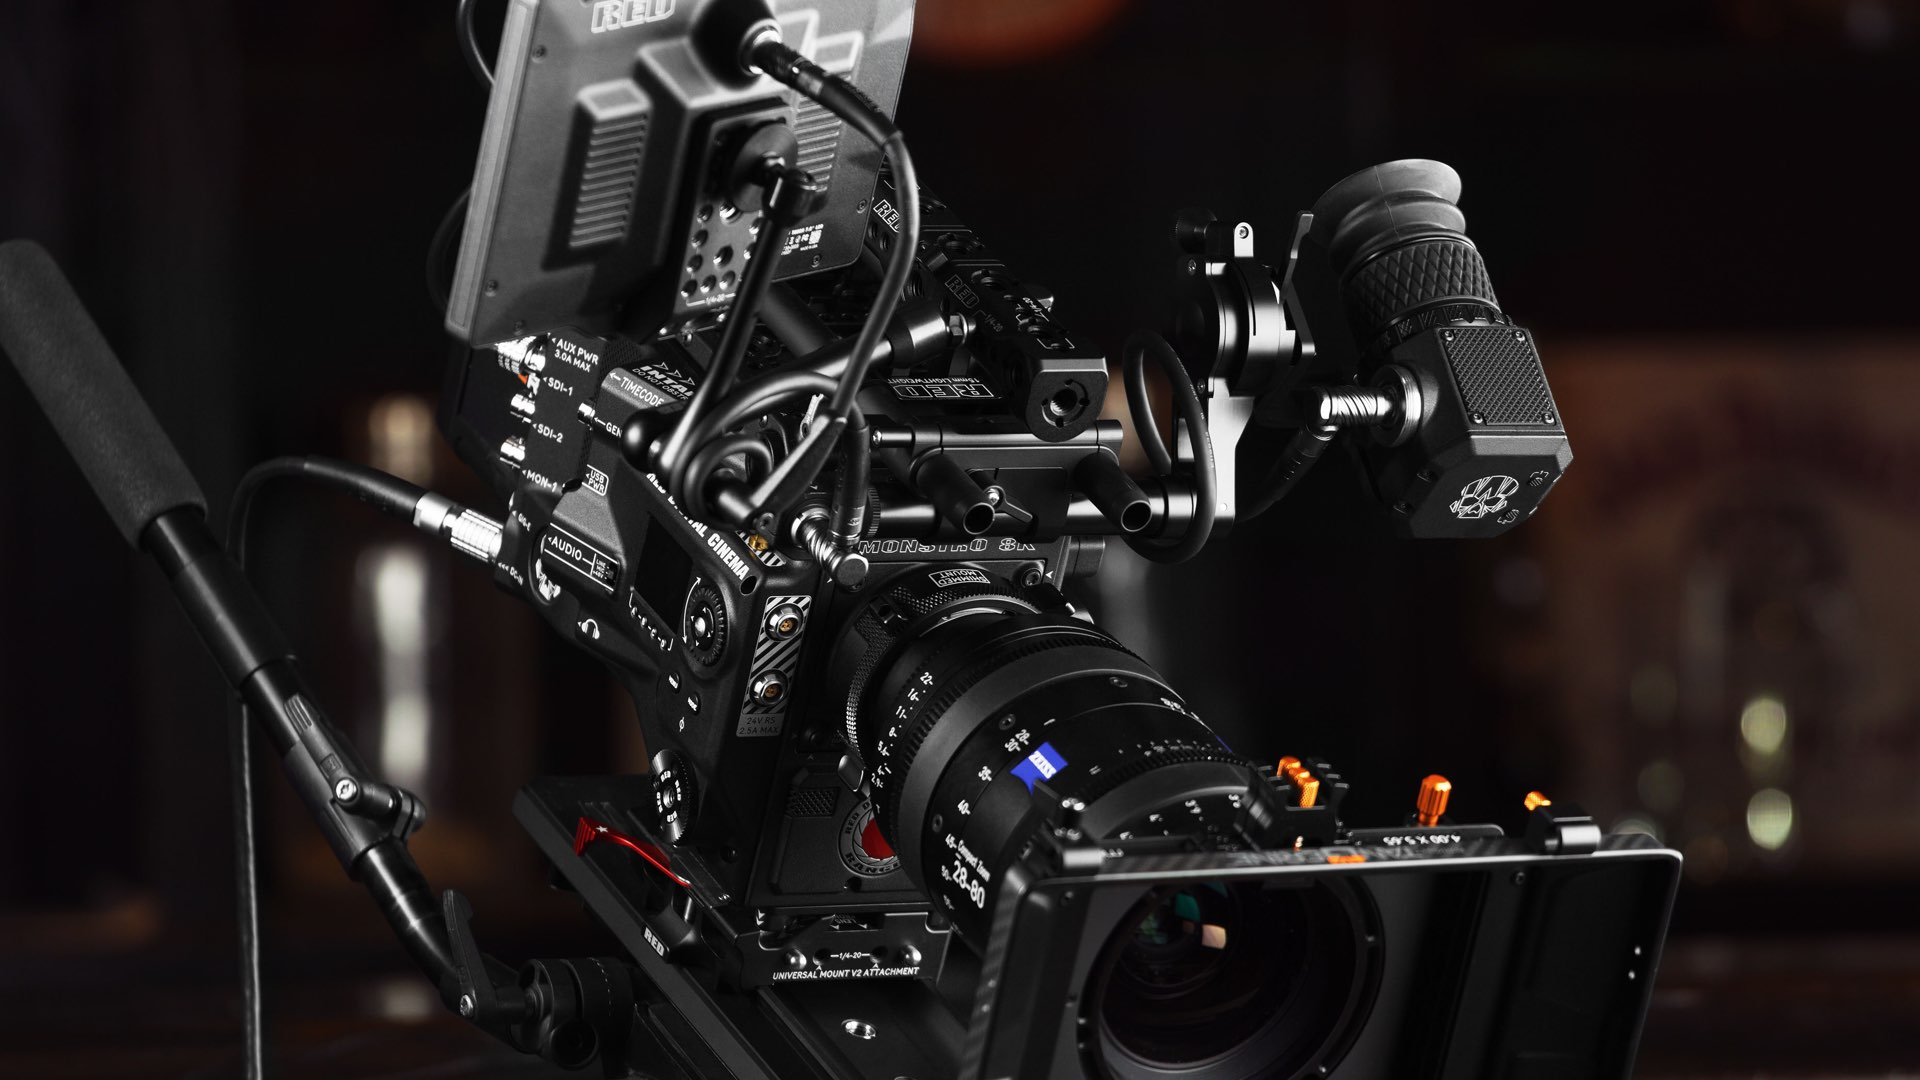 RED RANGER MONSTRO 8K is now Available for Rent - Y M Cinema